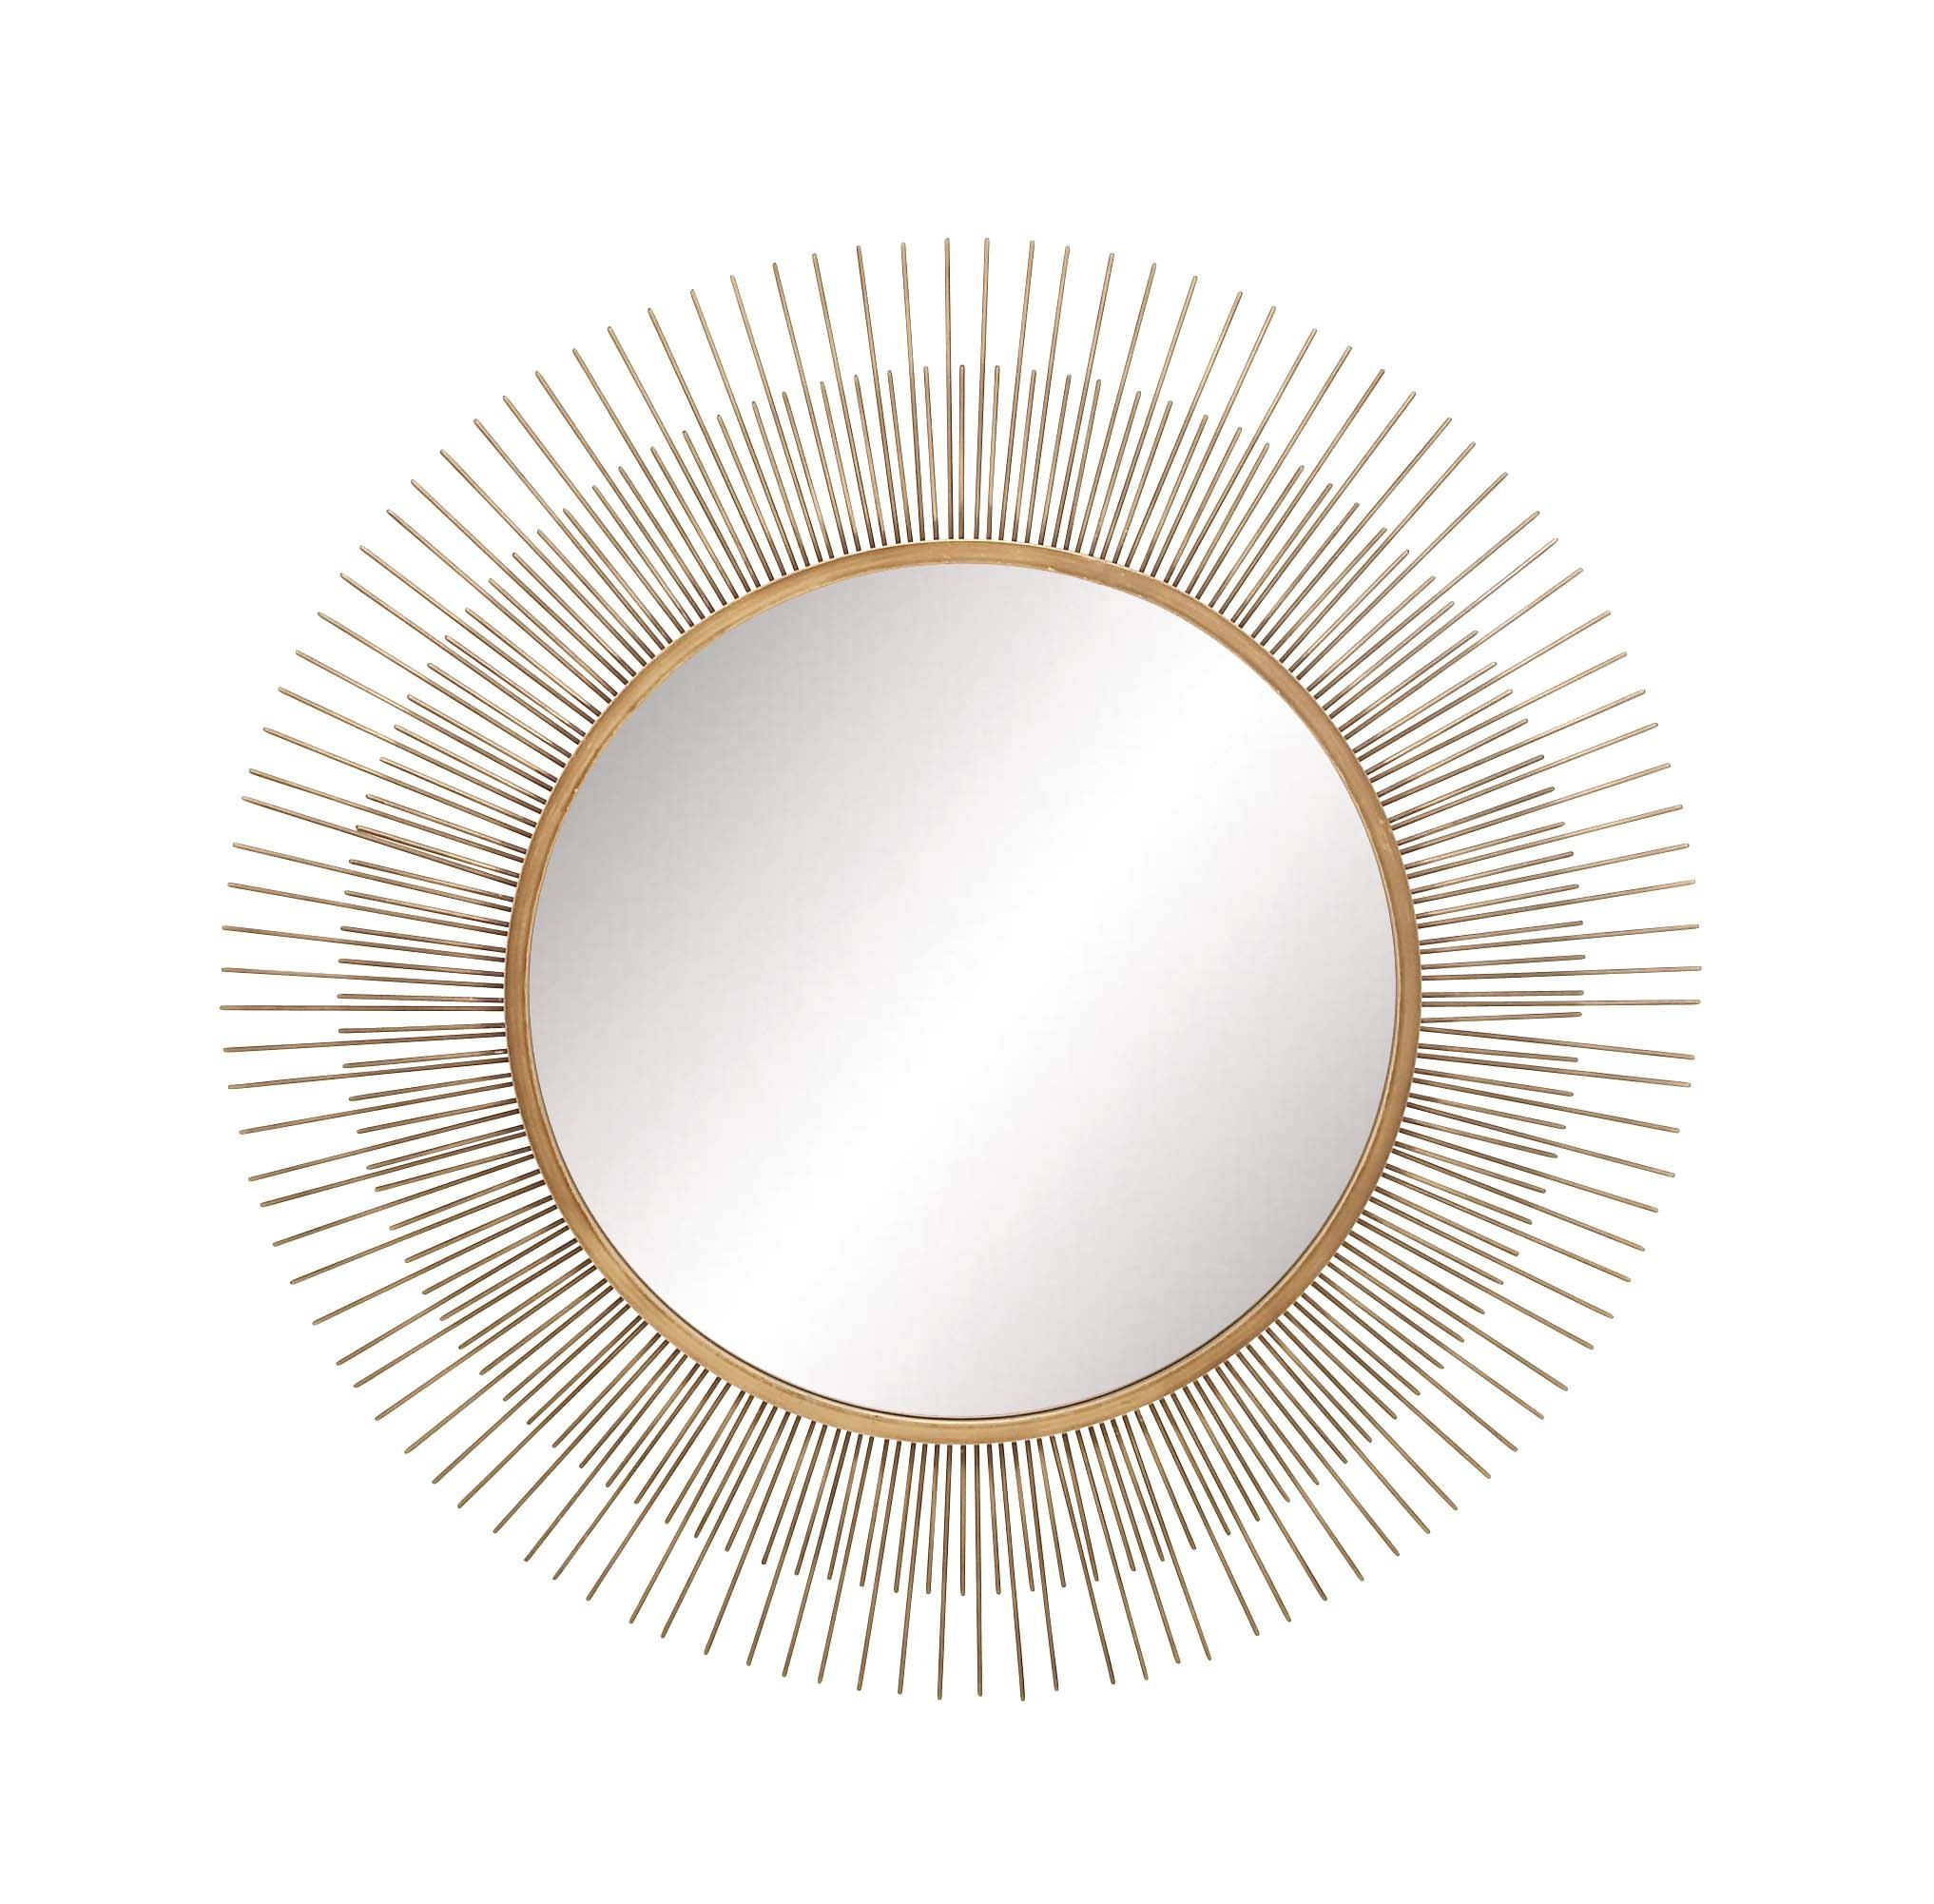 "Deco 79 22623 Metal Wall Mirror, 36"" x 36"", Gold - Large gold mirror with starburst silhouette from 2 layers of metal bars This large wall mirror measures 36""L x 1""W x 36""H and weighs 13.53 lbs.; round mirror measures 21"";  easy to hang by keyhole hardware in back Iron mirror frame with MDF back - bathroom-mirrors, bathroom-accessories, bathroom - 81SfRraLjOL -"